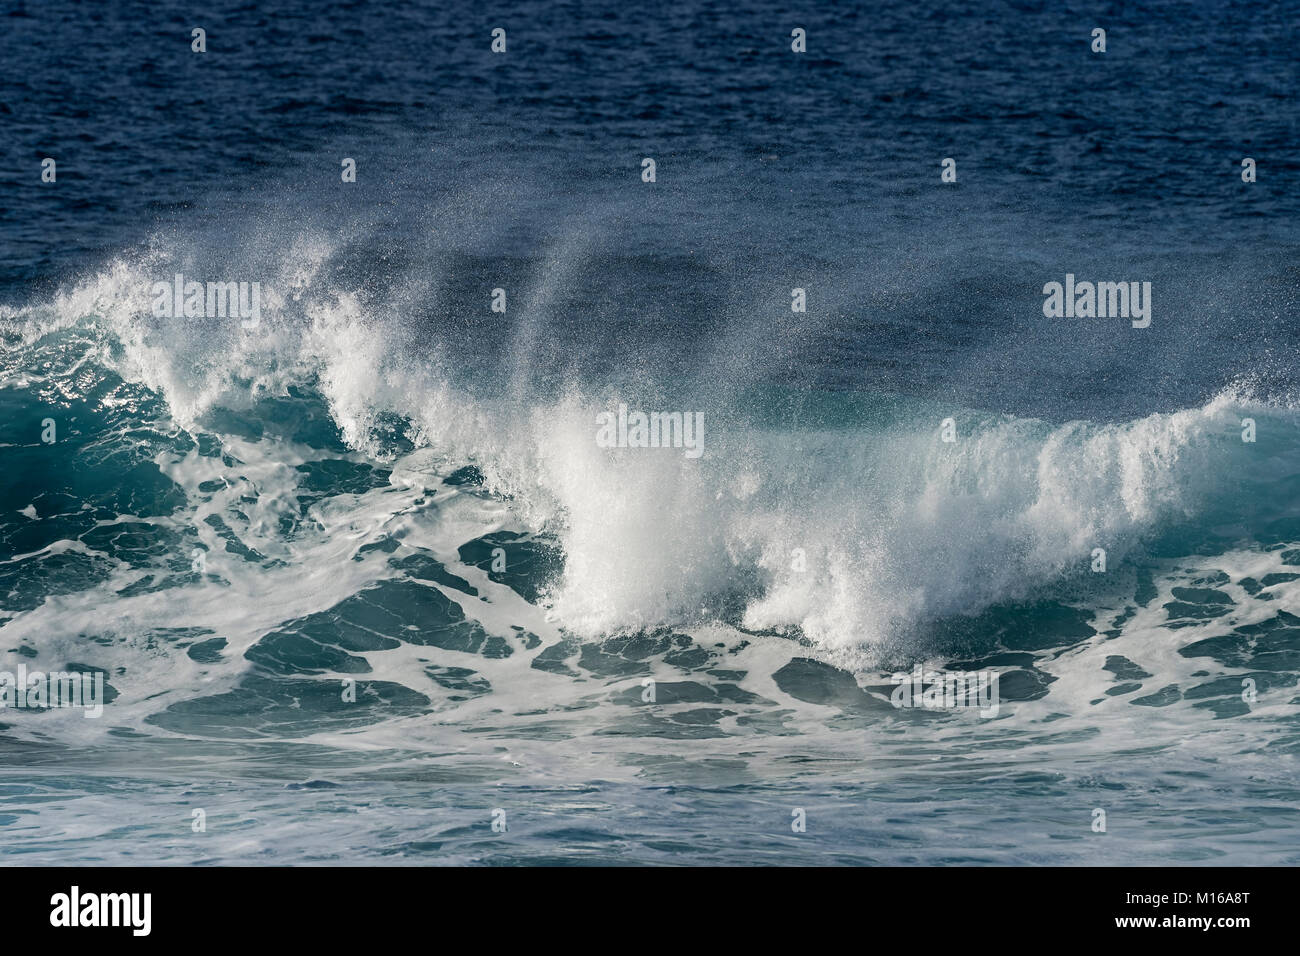 Surf in the Pacific Ocean, Easter Island, Valparaiso, Chile, Polynesia, Oceania - Stock Image